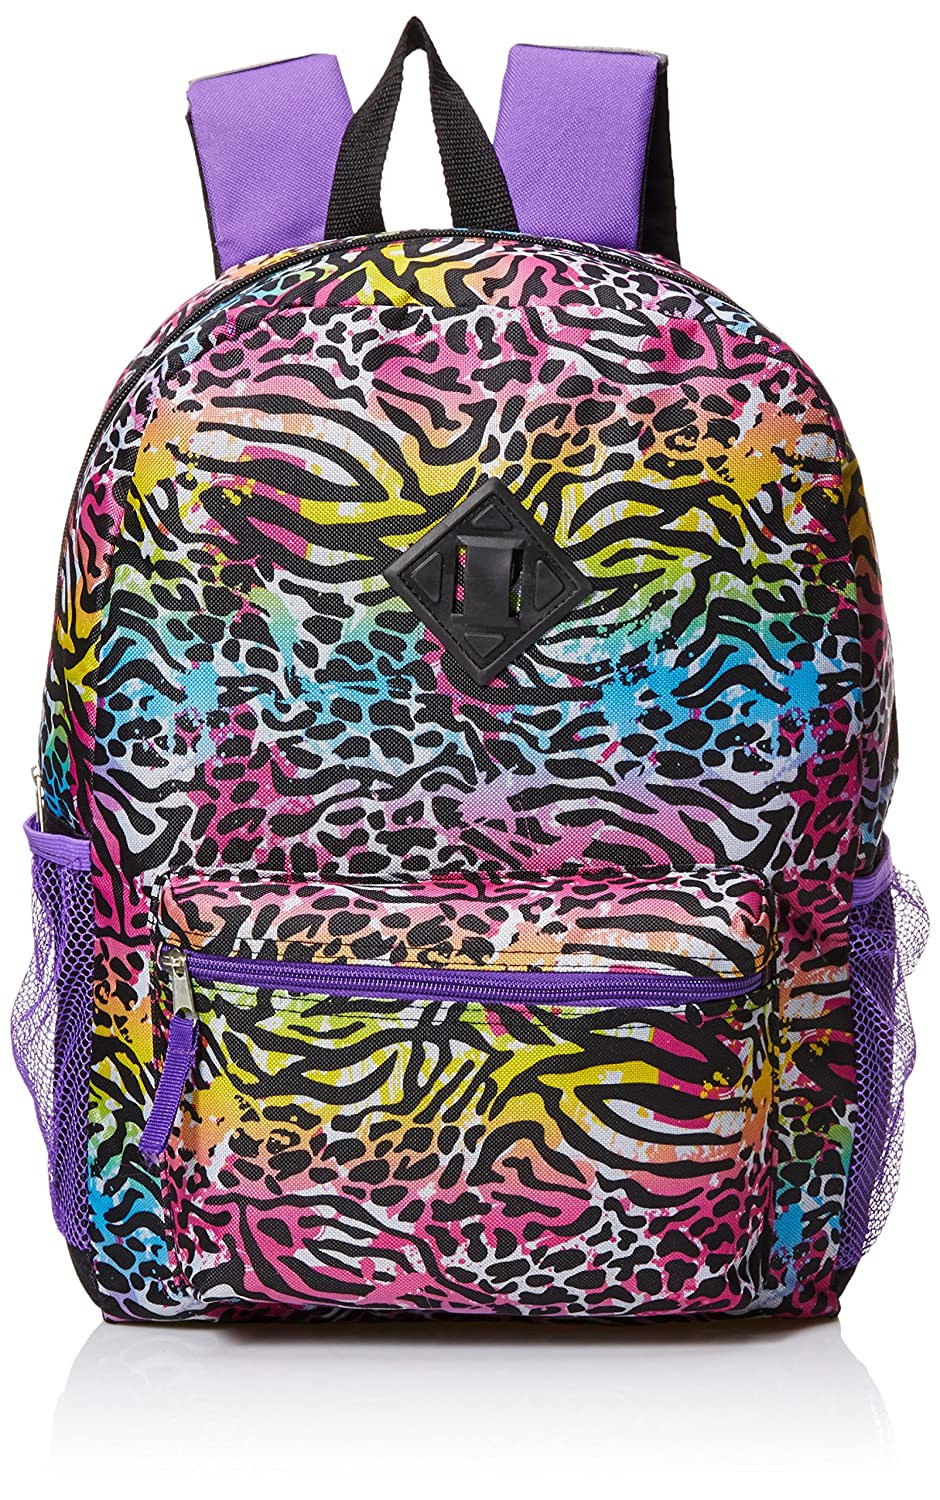 [アクセサリー 22]Accessories 22 Splatter Zebra 5pc Backpack Set, Multi 5PCBP12AZ [並行輸入品] One Size Multi B01D8RQCD0